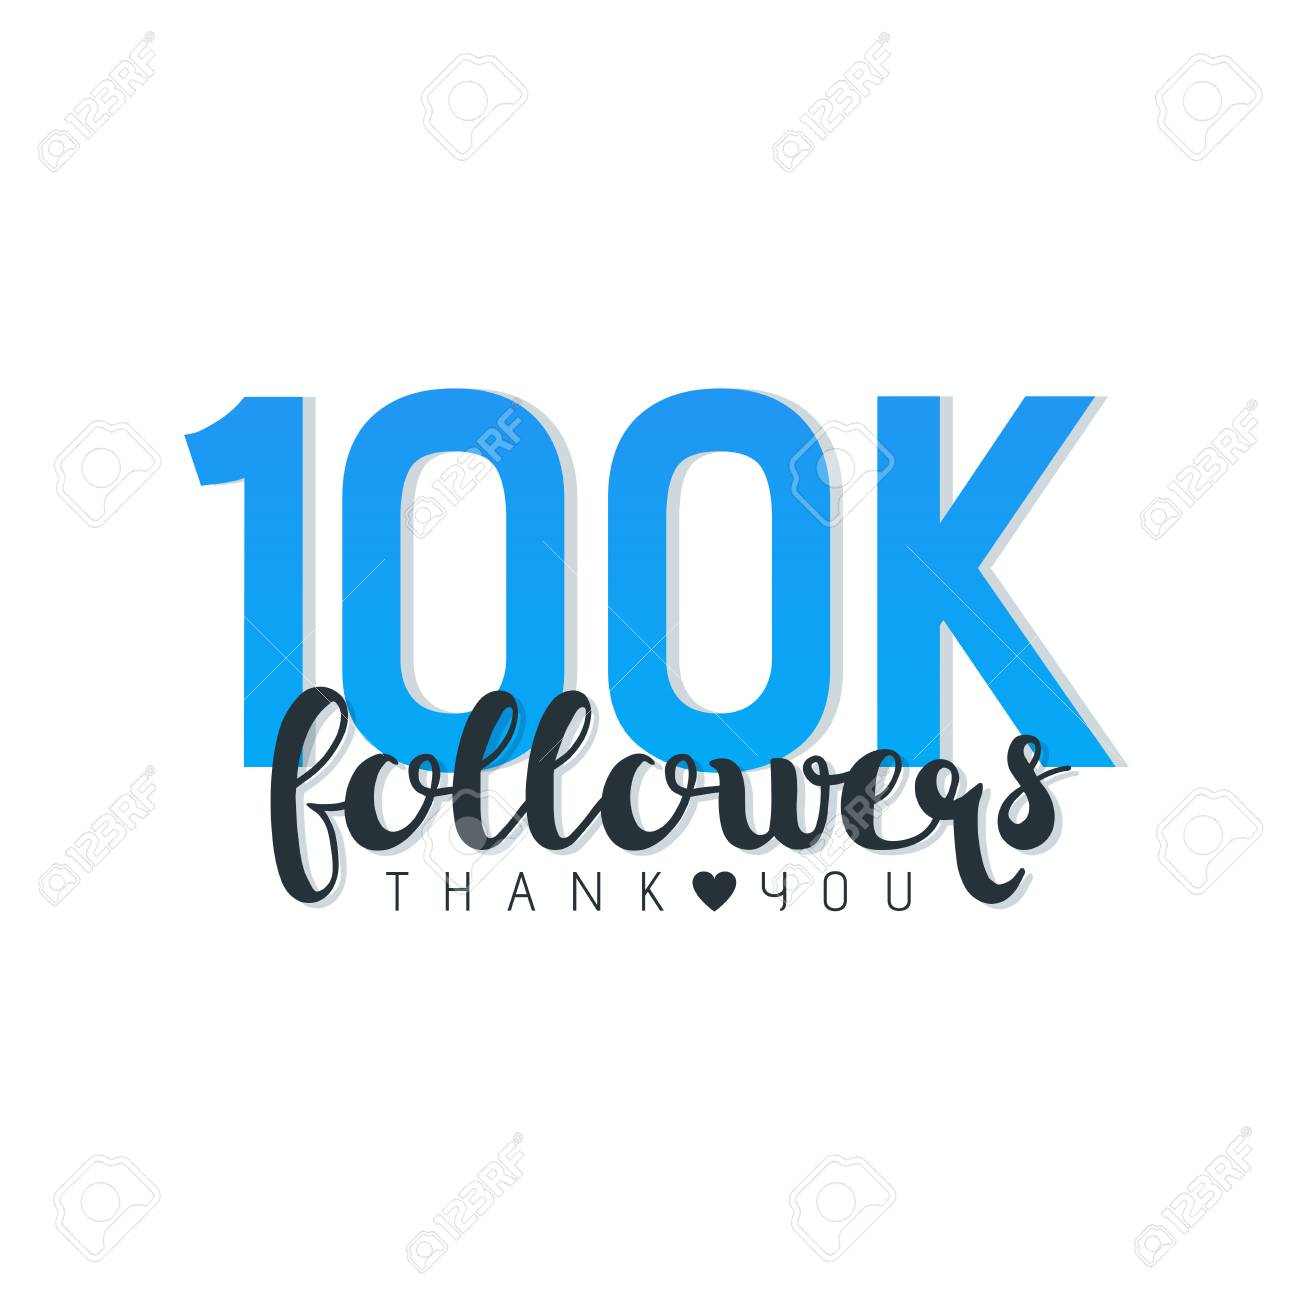 100K followers thank you letters vector illustration